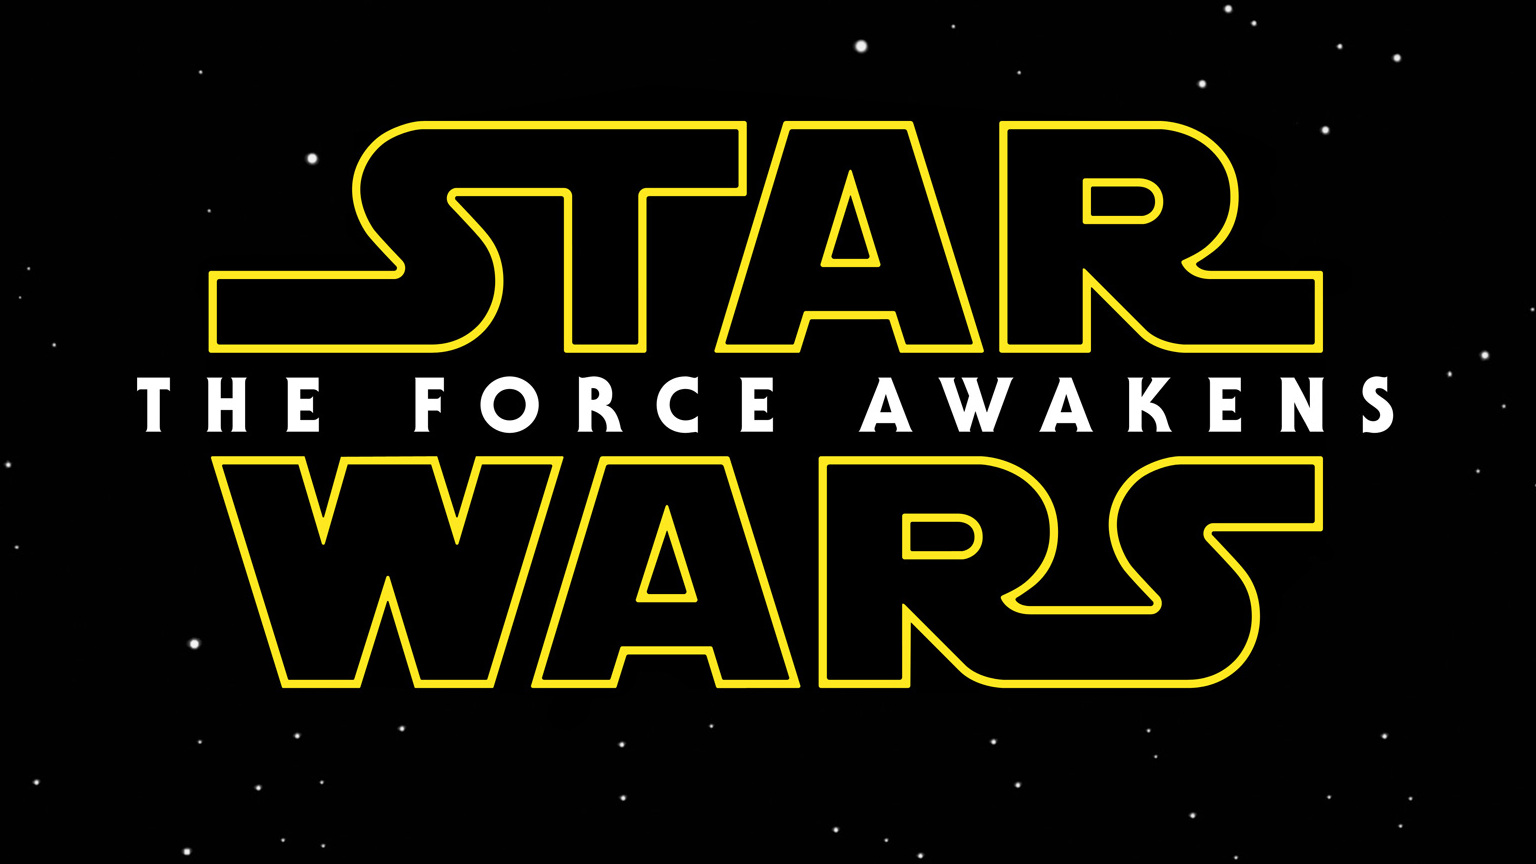 You Can See the Next Star Wars Trailer Before 'Avengers: Age of Ultron'